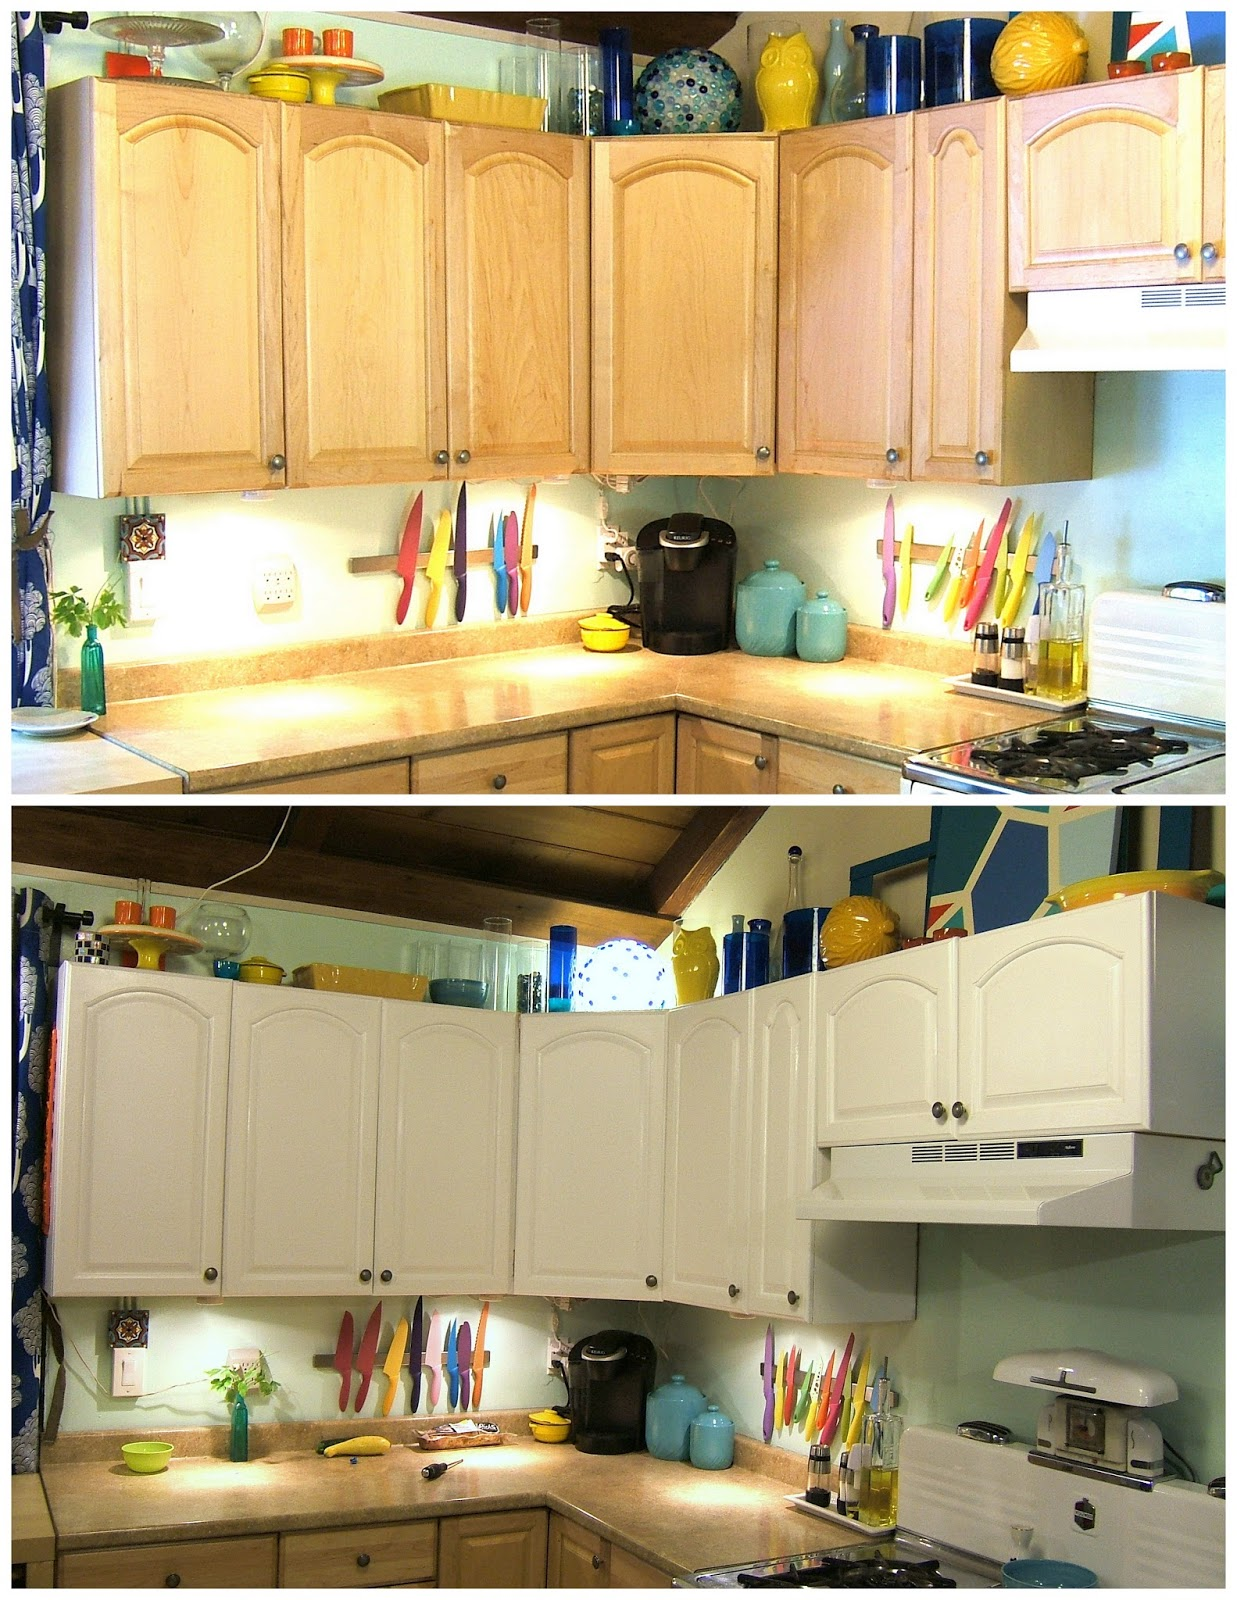 Repainting Kitchen Cabinets Before and After